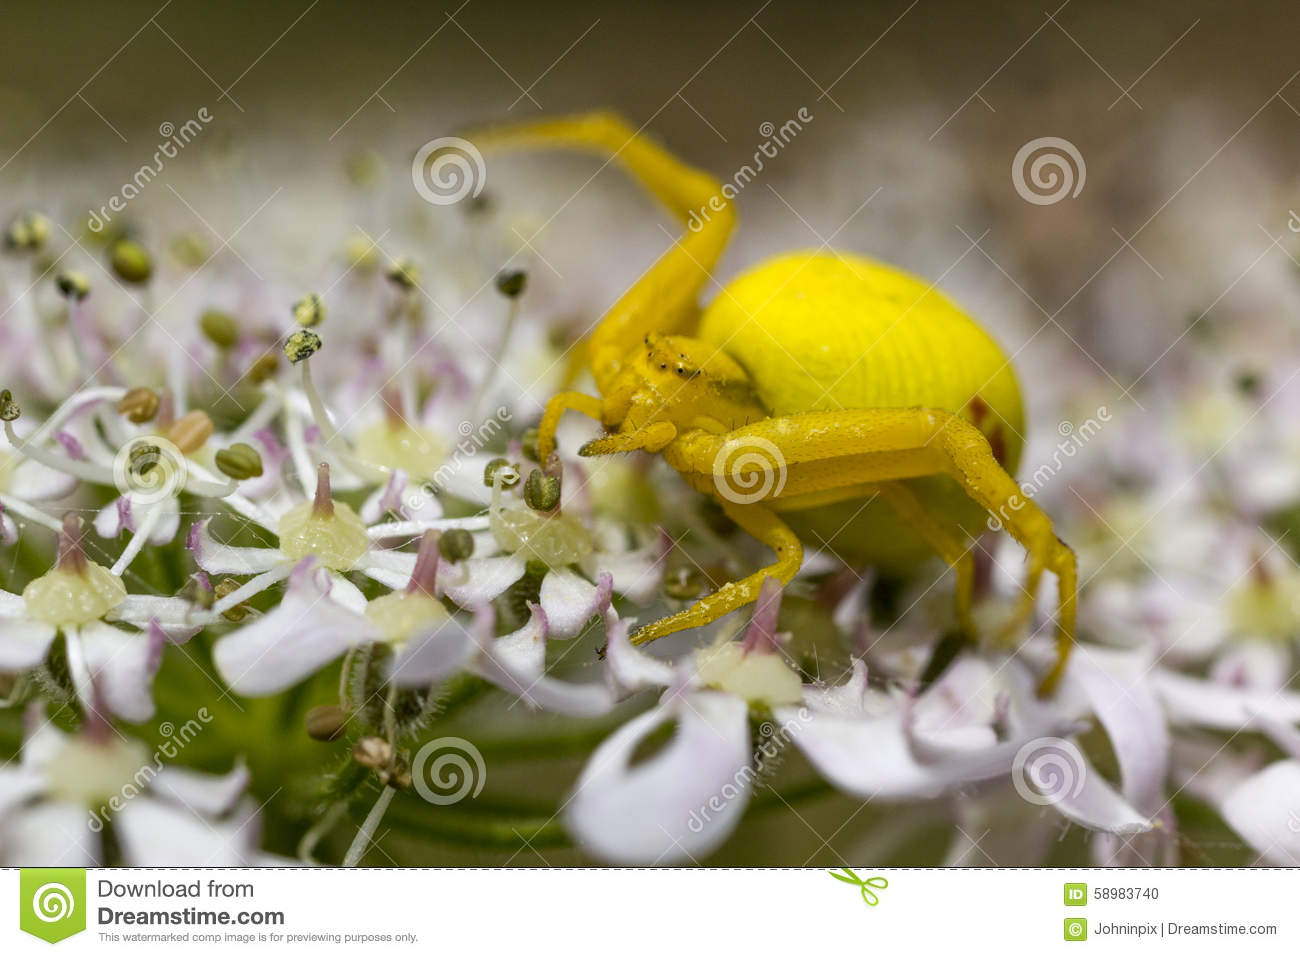 Detail Of A Bright Yellow Crab Spider (Misumena Vatia) On A Flower.